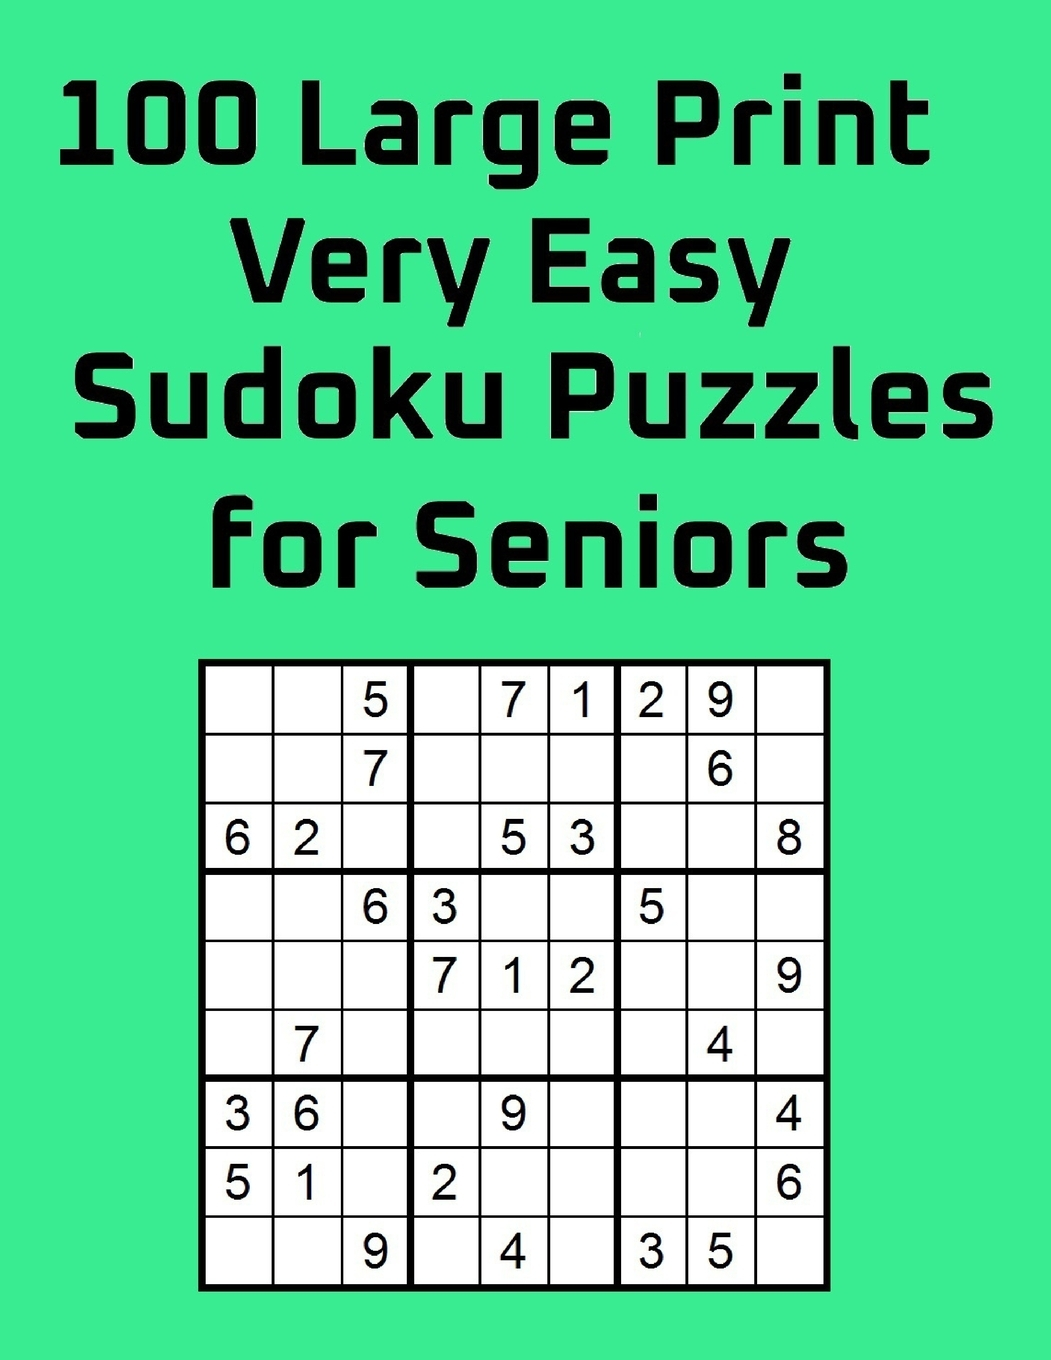 100 Large Print Very Easy Sudoku Puzzles For Seniors One